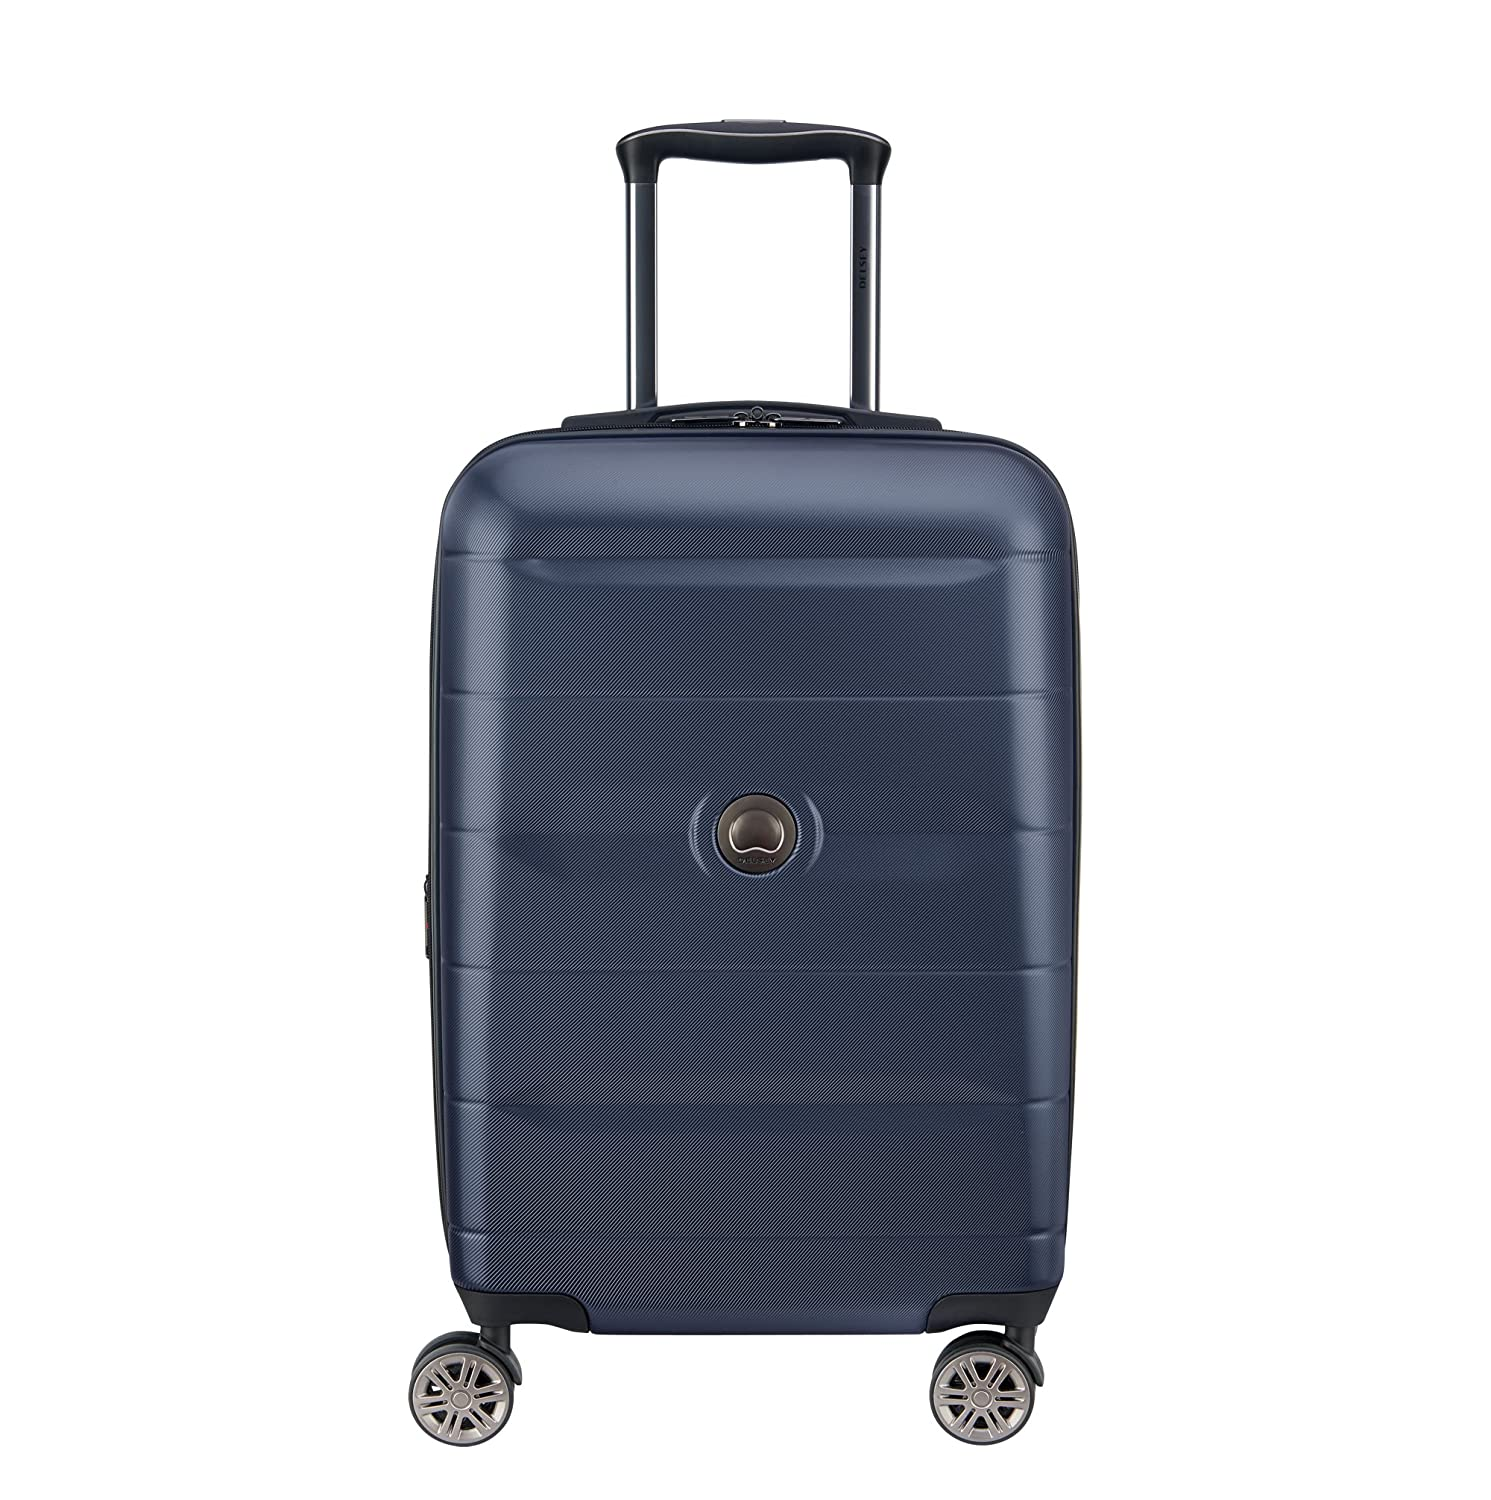 DELSEY Paris Comete 2.0 Expandable Spinner